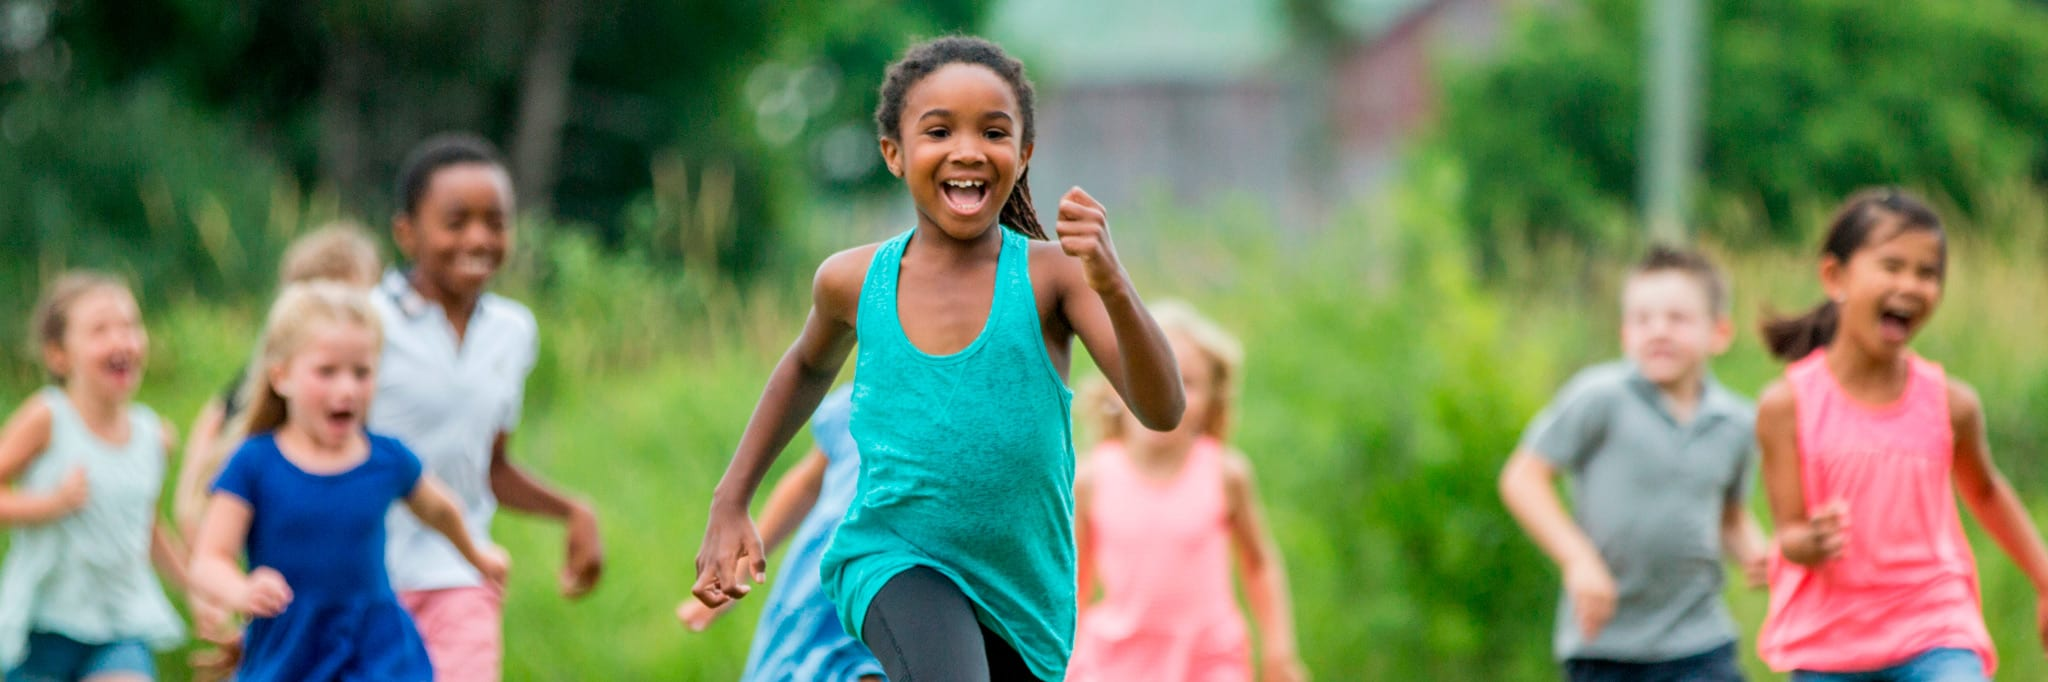 summer camp girl running in field with friends